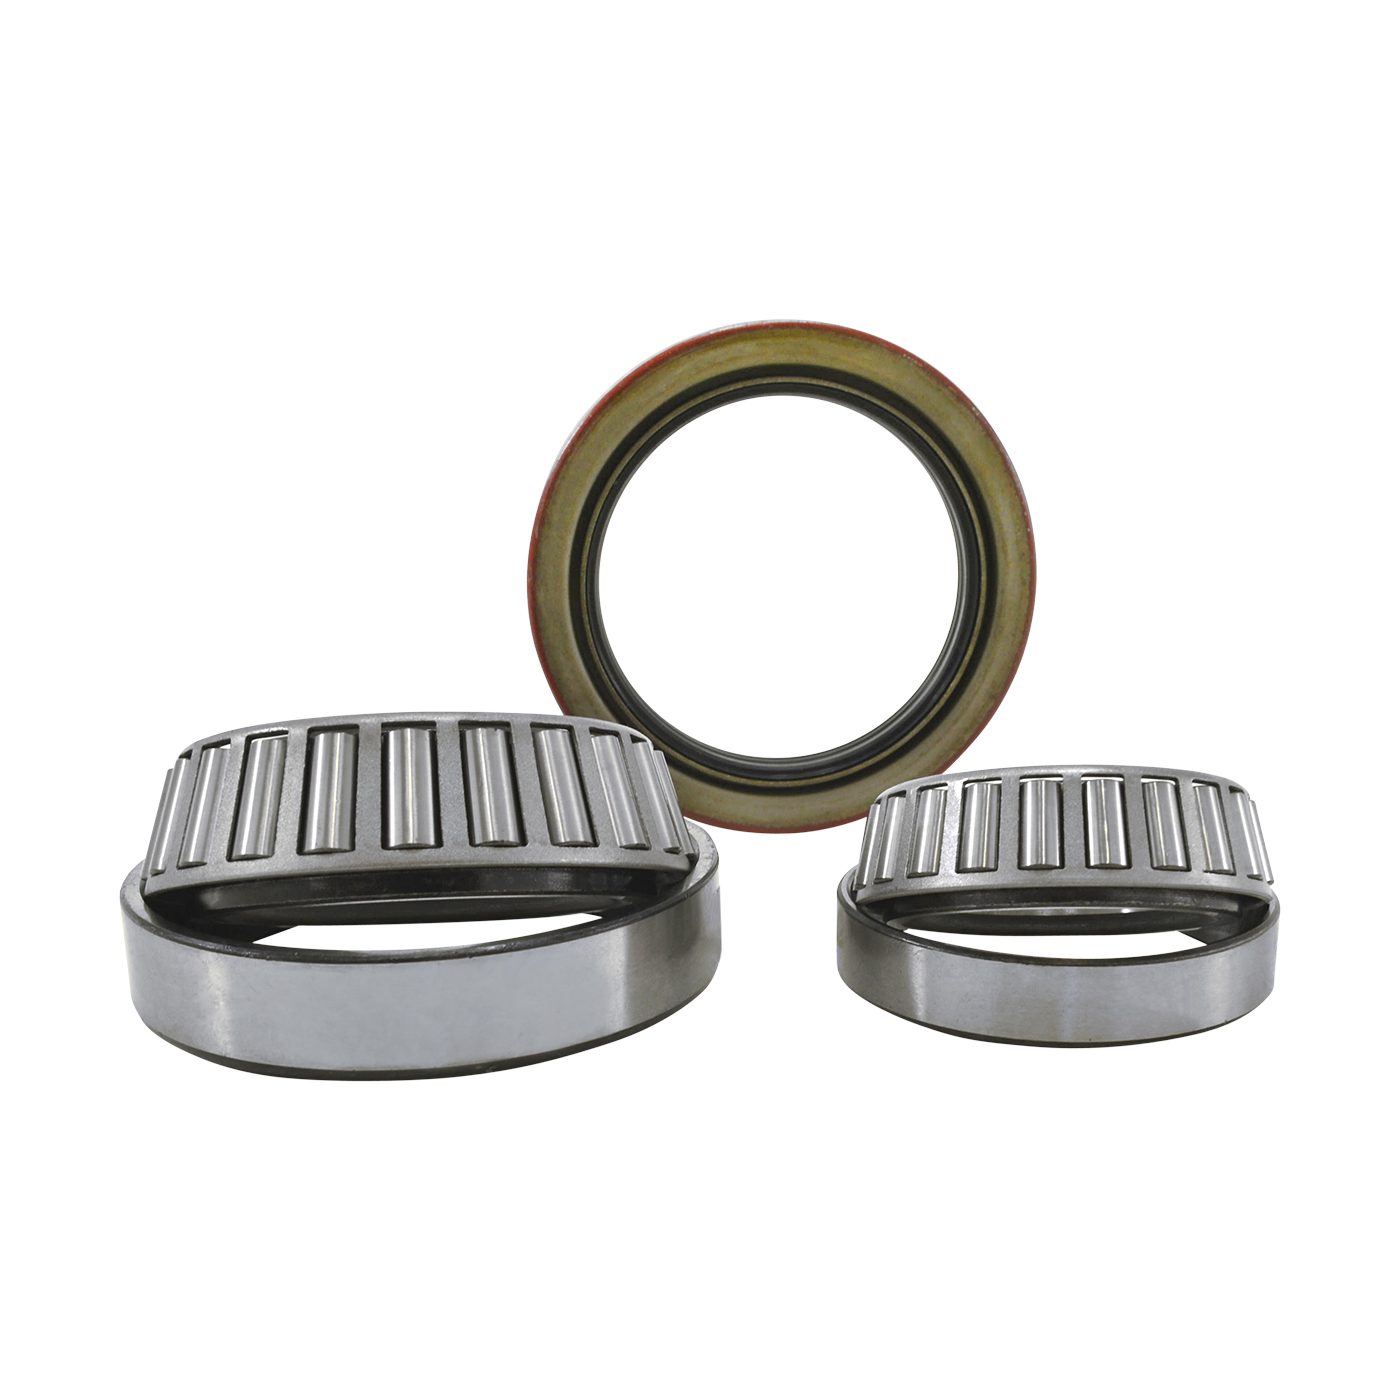 AK F10.25 - Yukon Rear Axle Bearing and Seal Kit for Ford